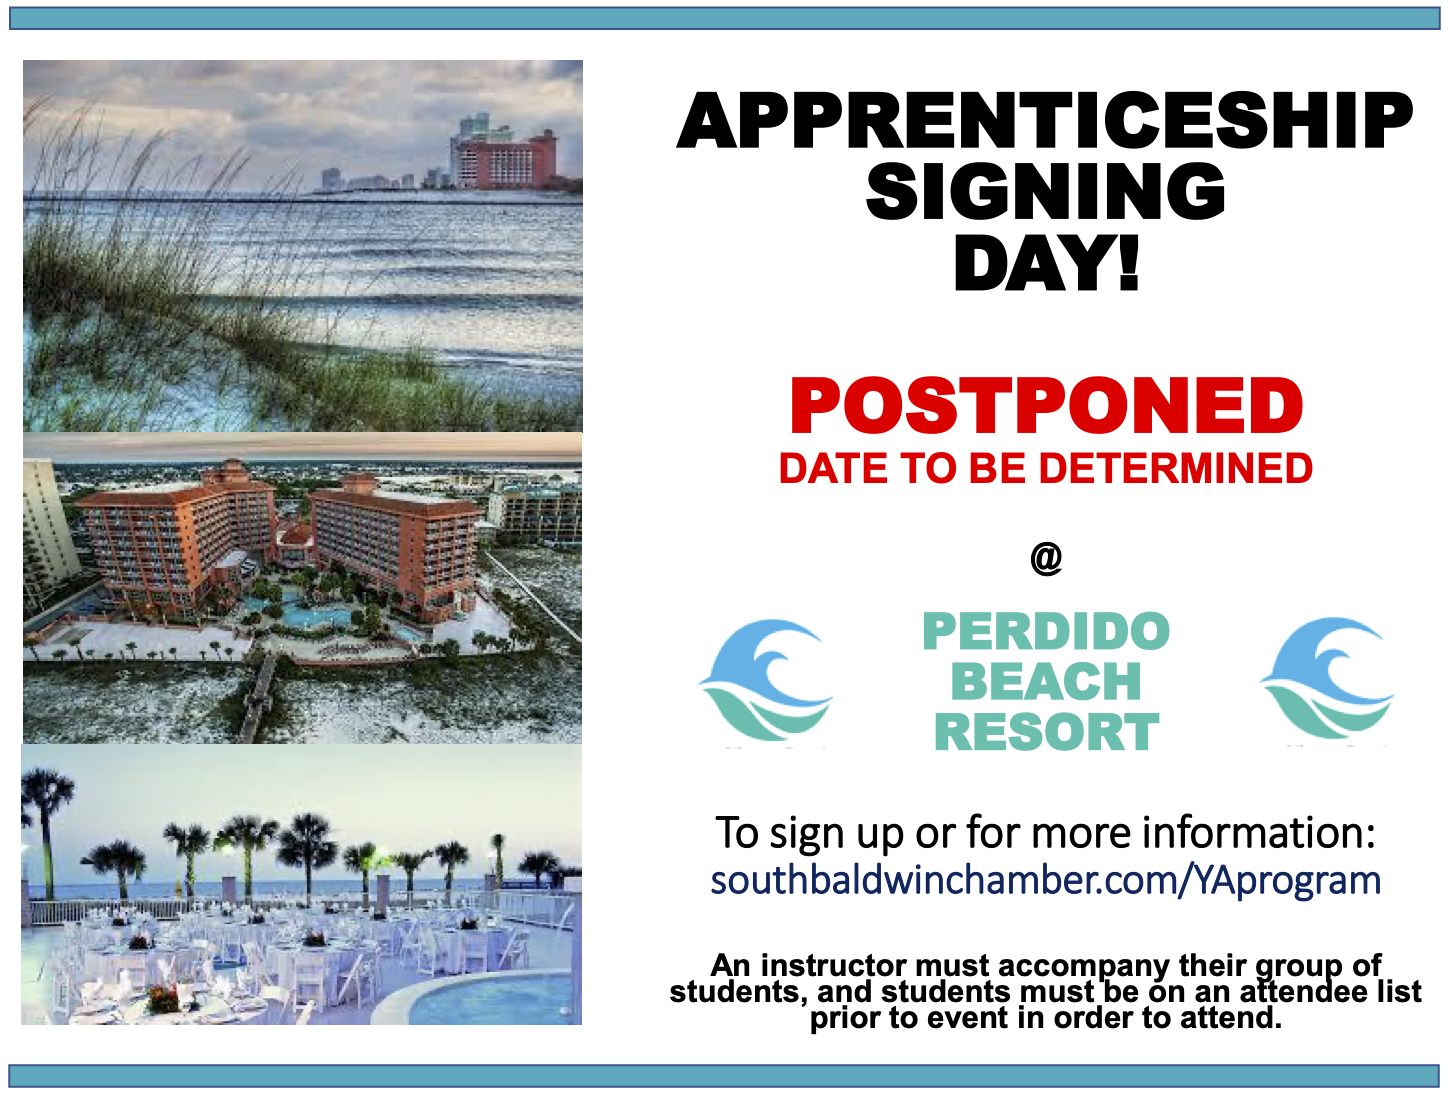 YOUTH APPRENTICESHIP 2020 SIGNING DAY